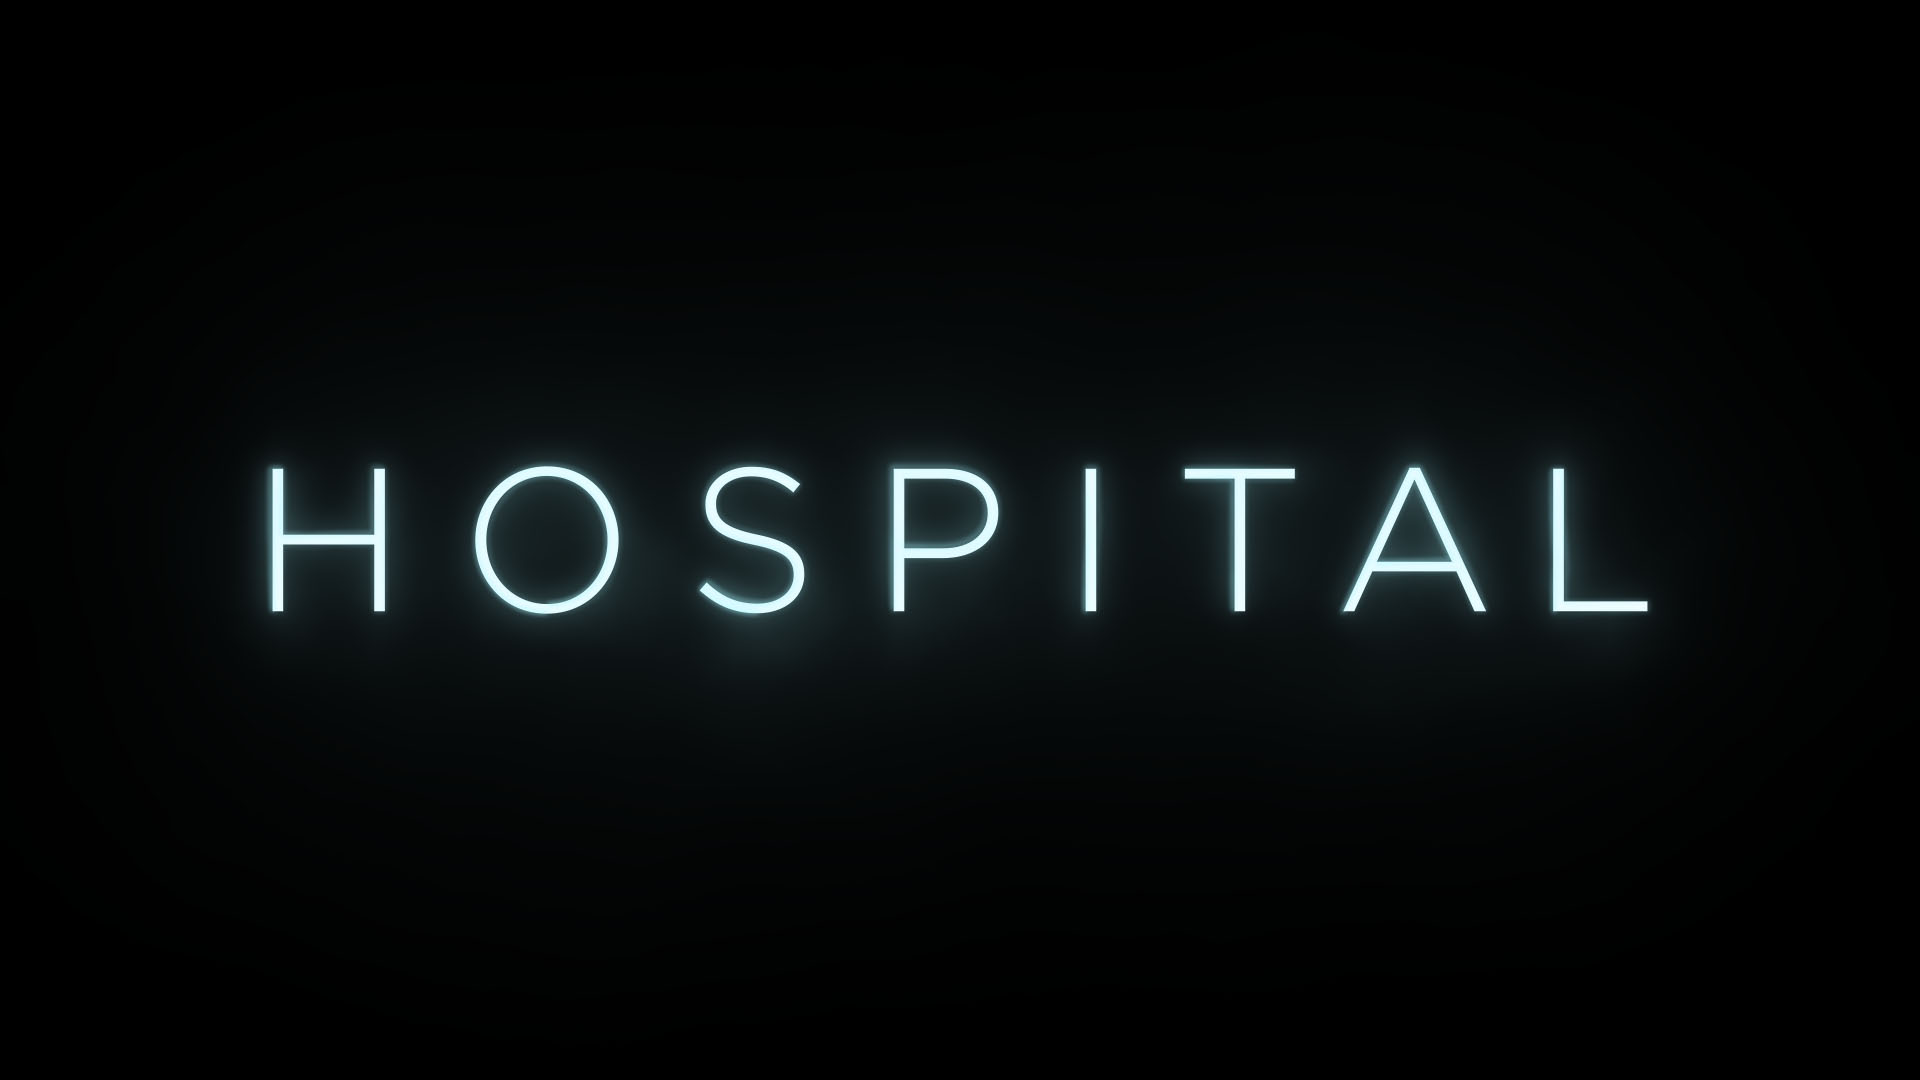 BBC Two's Hospital to return for brand new series in January